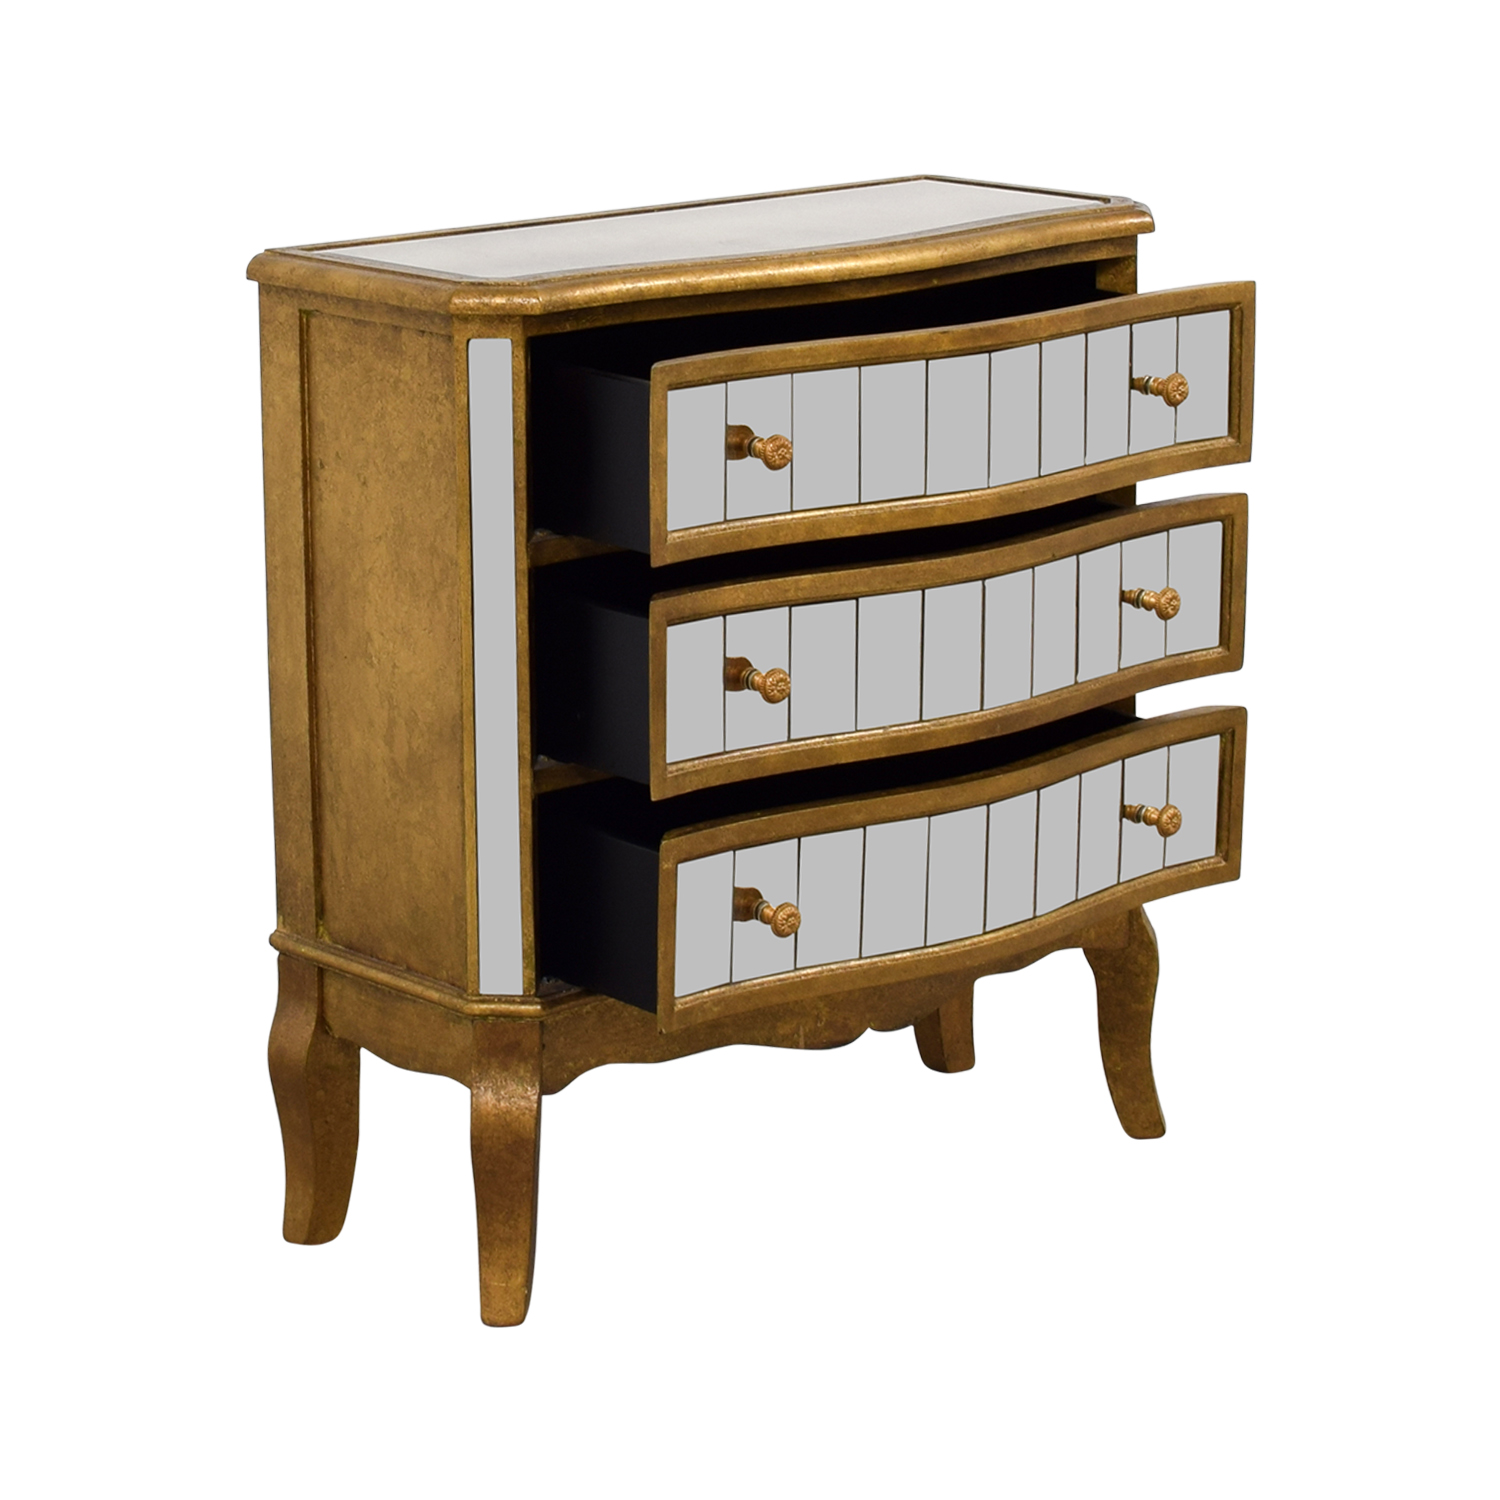 71 Off Pier 1 Imports Pier 1 Imports Mirrored Chest